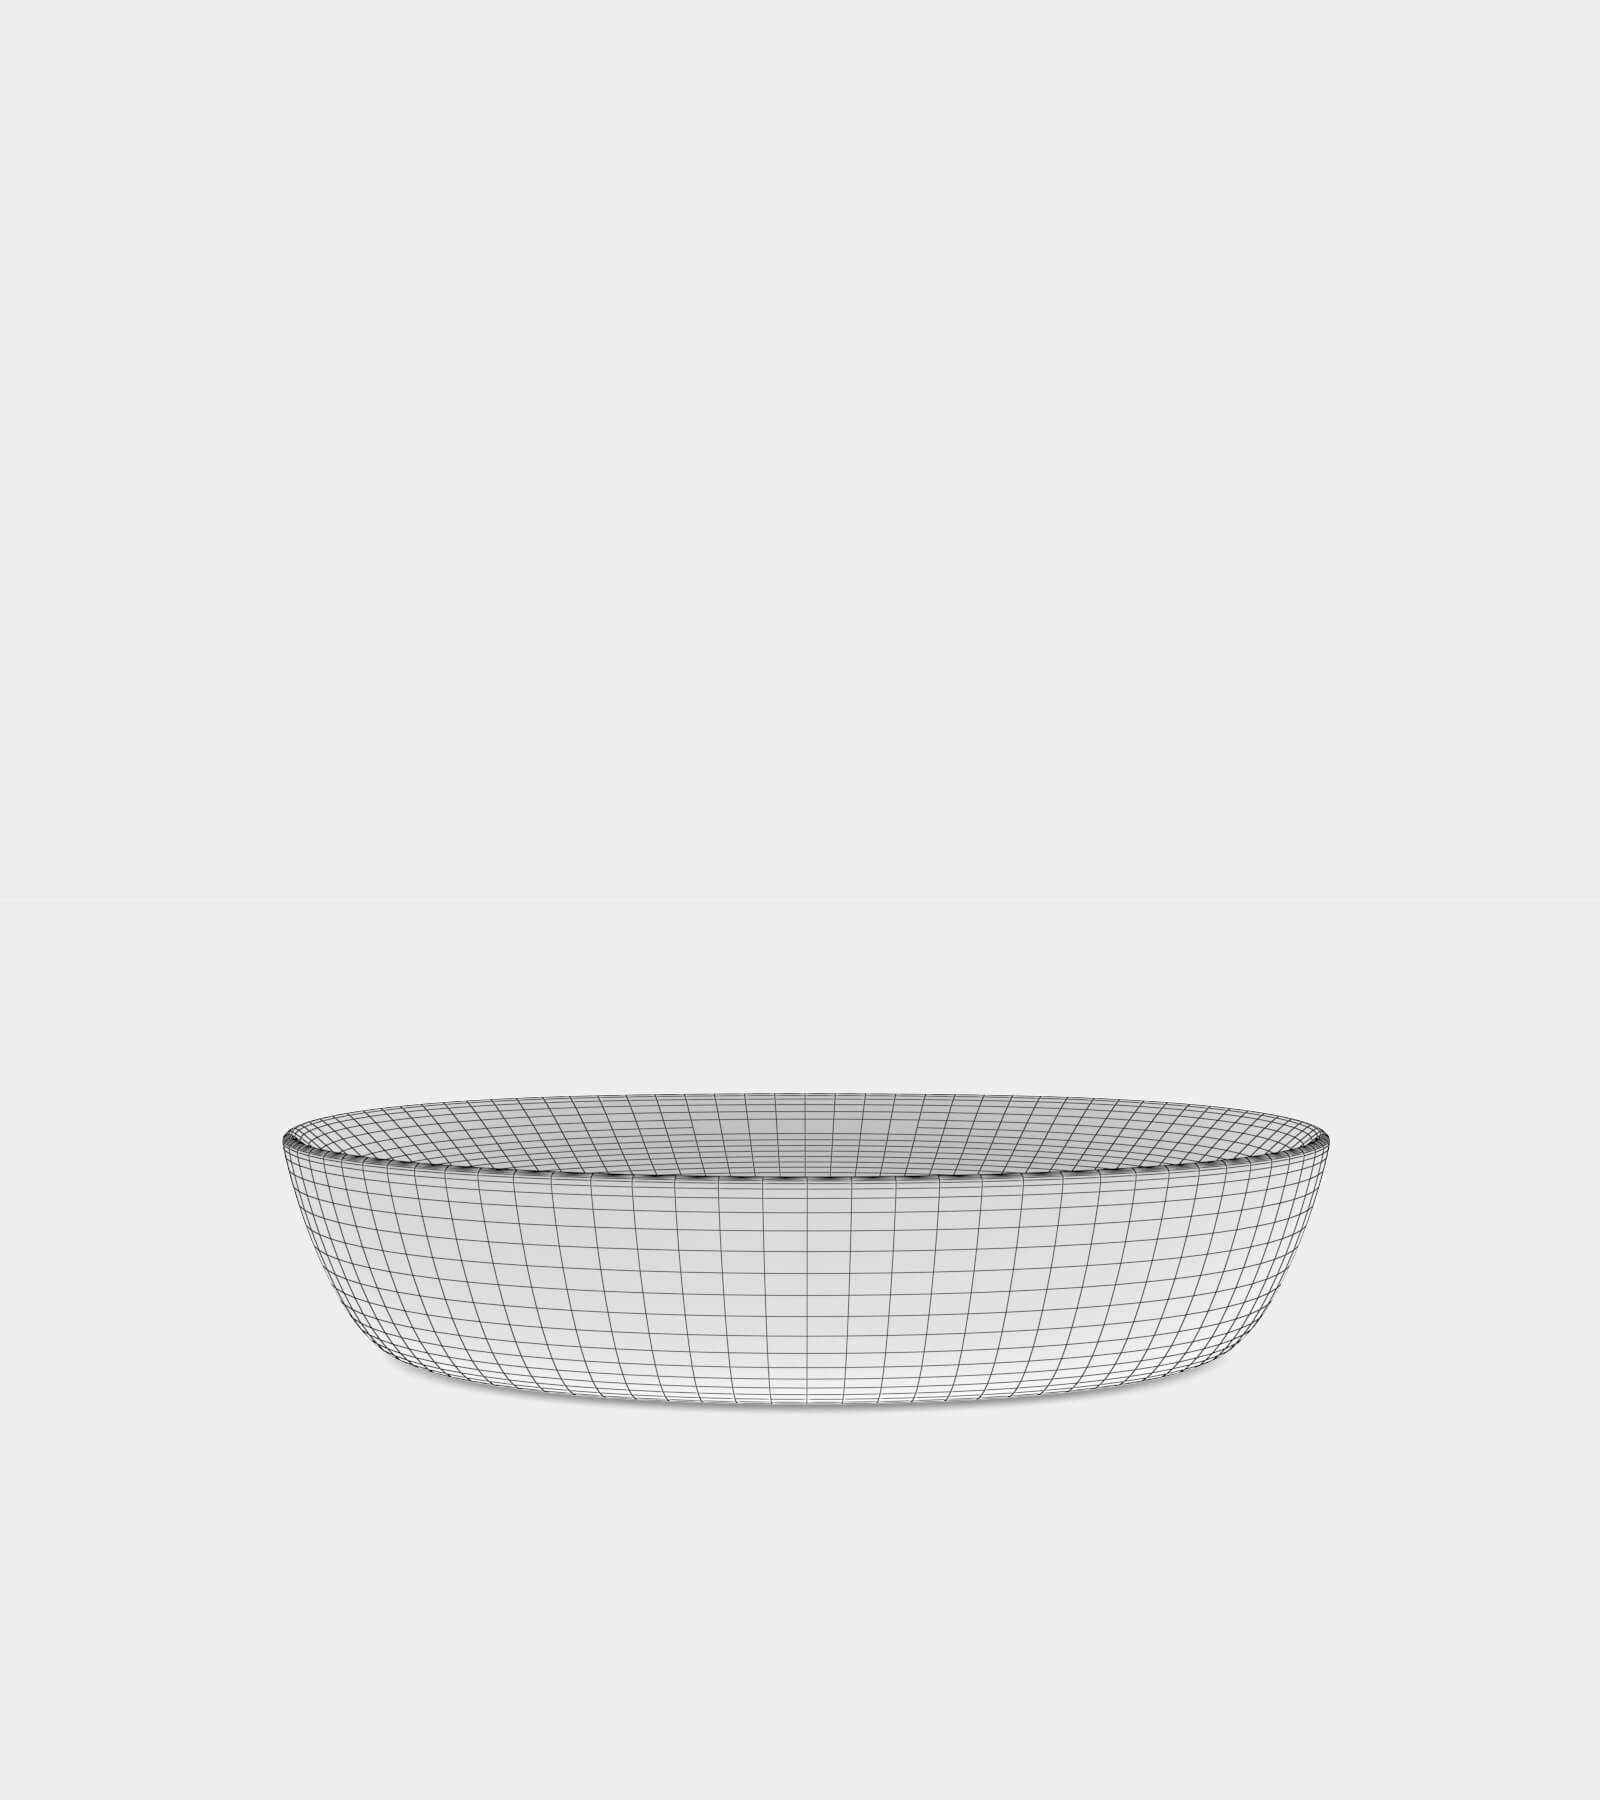 White wash basin with a round shape-wire-22 3D Model